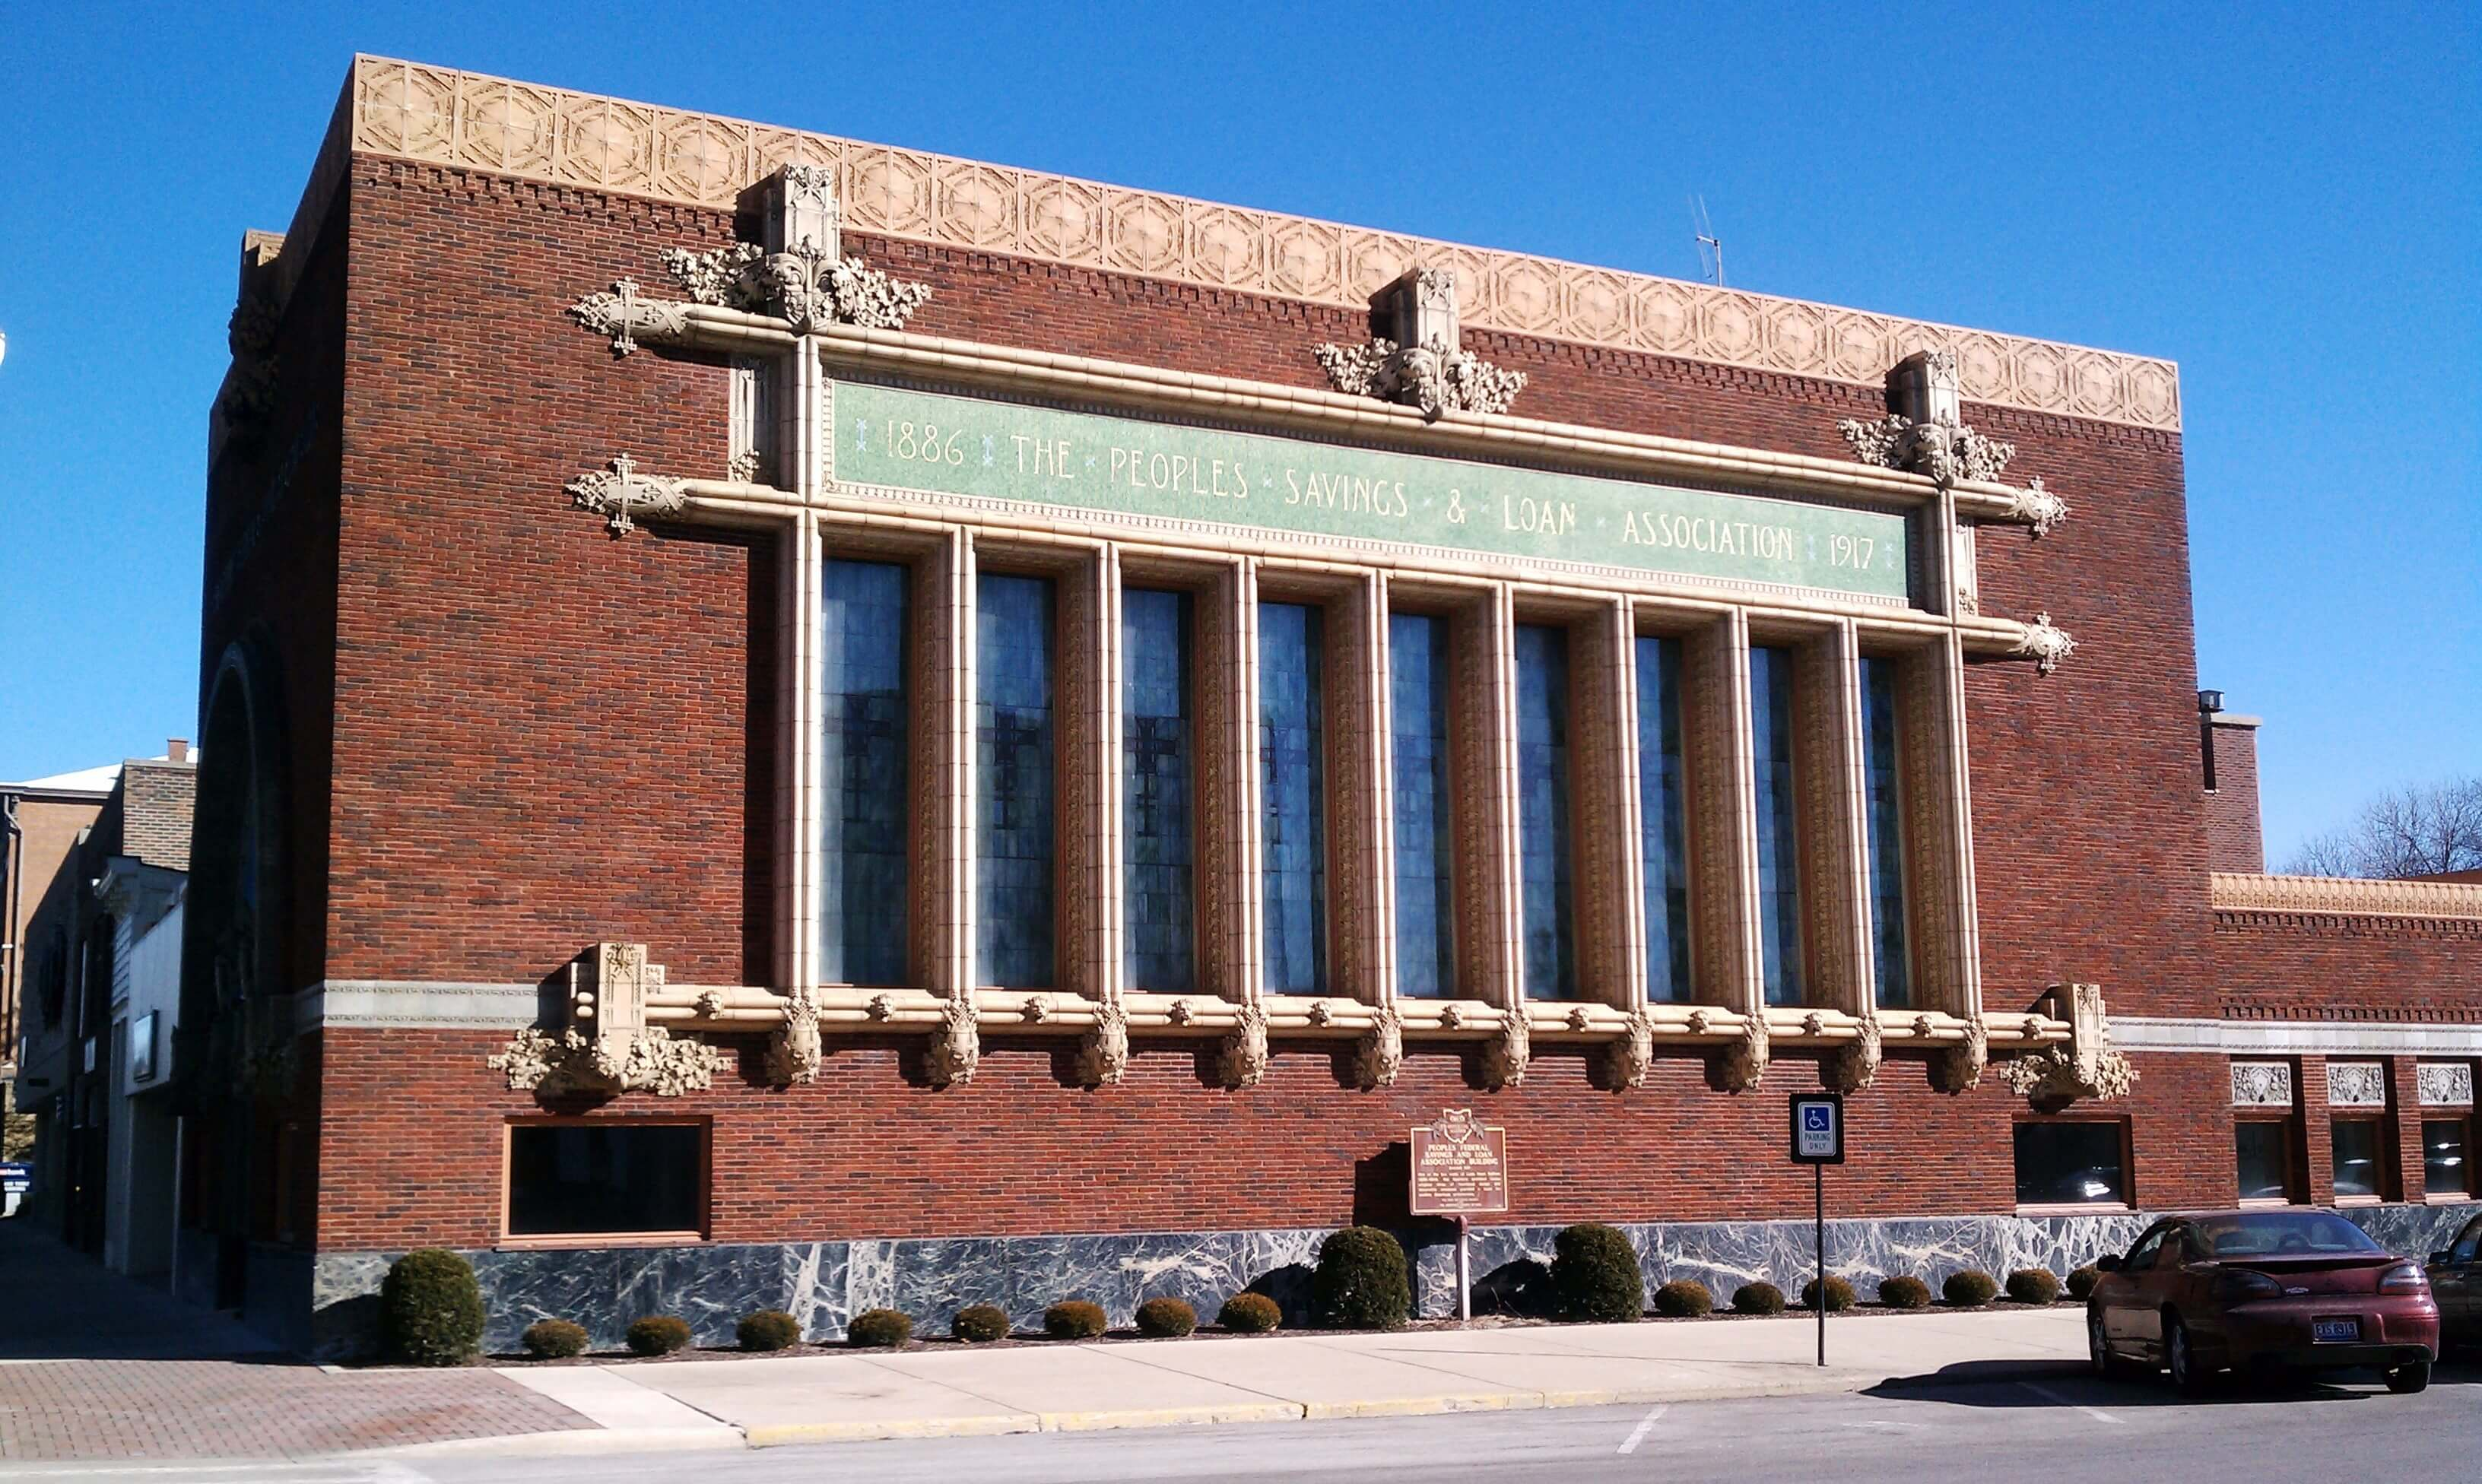 Peoples Federal Savings & Loan Association, Sidney Ohio (Louis Sullivan)